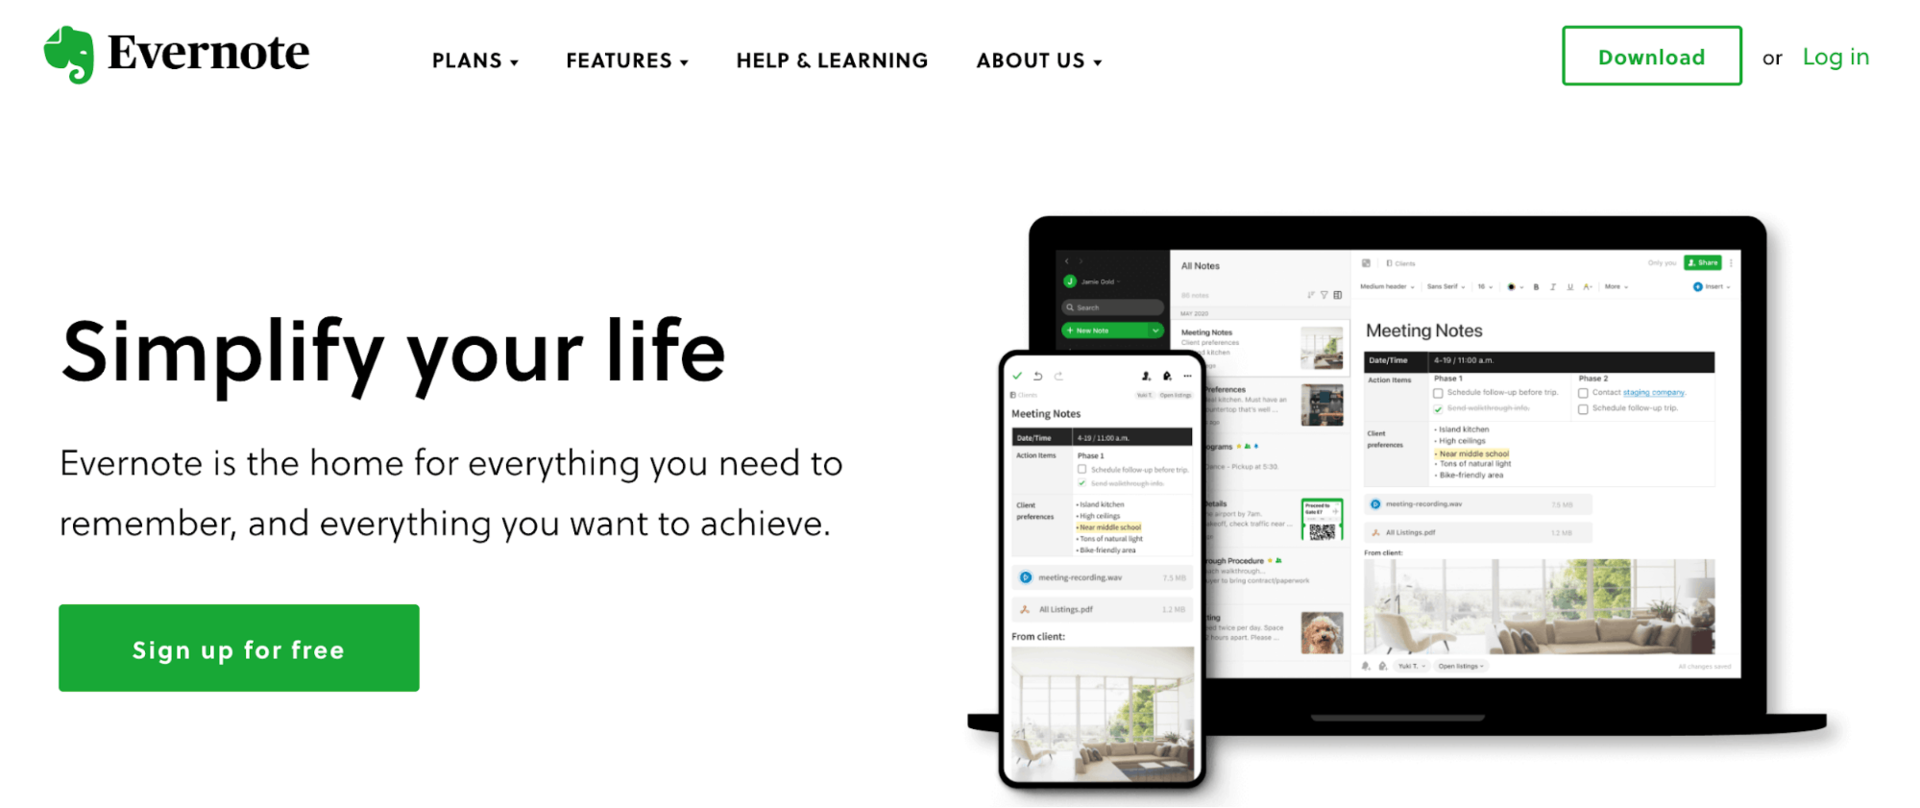 Evernote referral marketing example